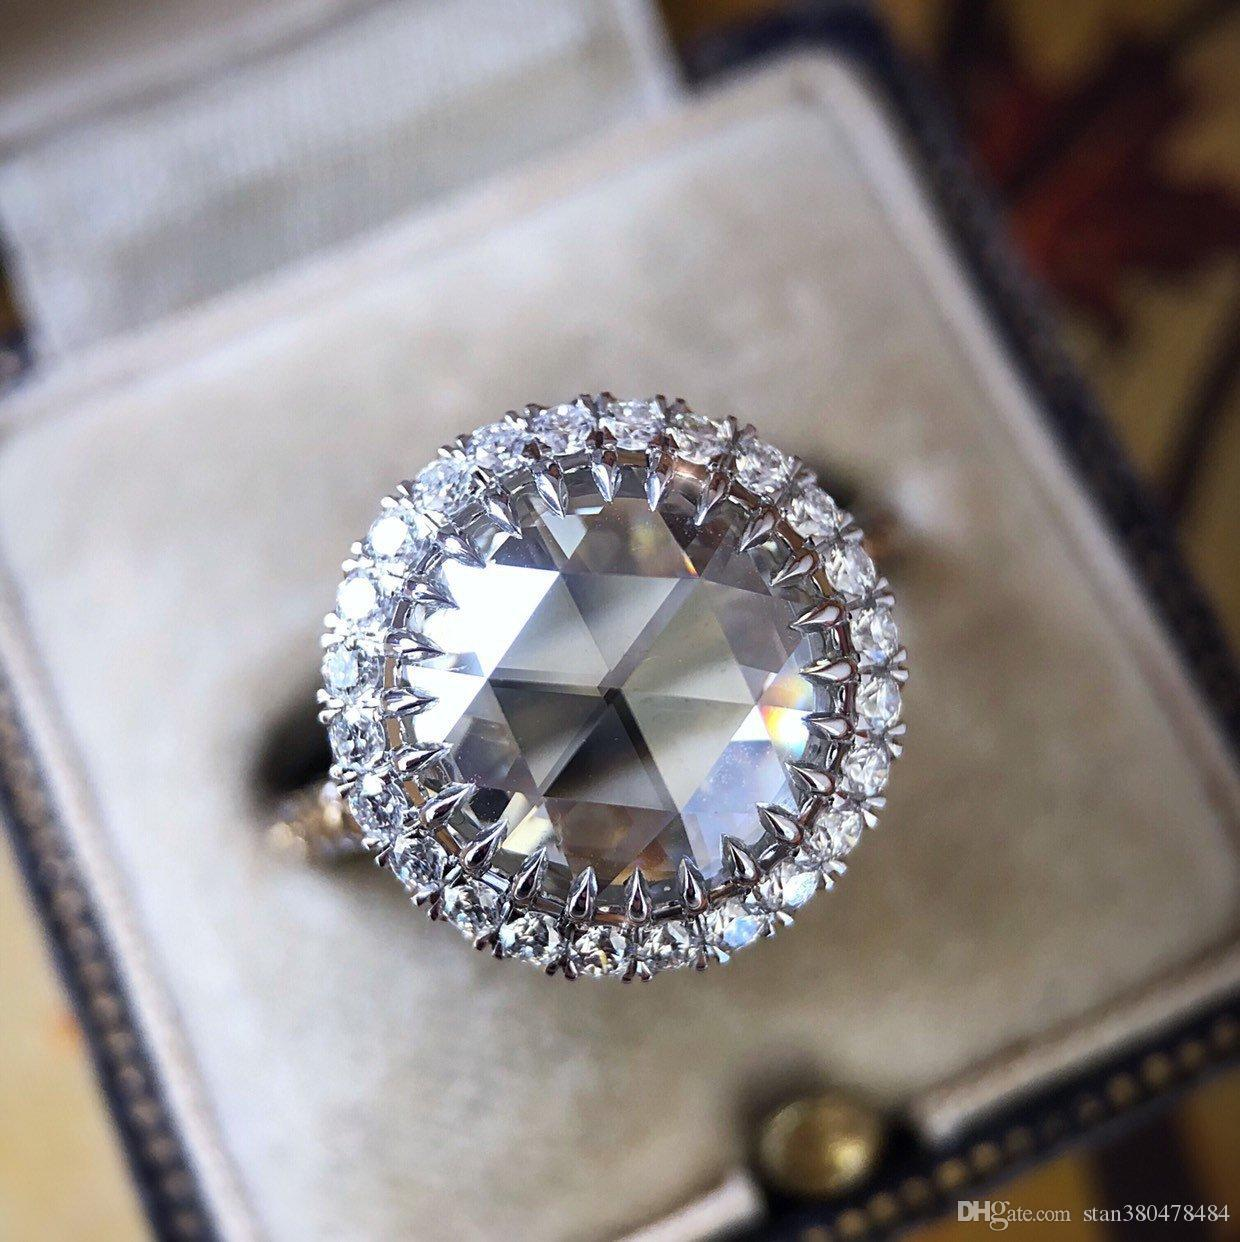 2019 New Carat Simulation Flash Diamond Ring Europe And America Vintage Big Engagement Lady Wedding From Stan380478484: The Flash Inspired Wedding Ring At Websimilar.org